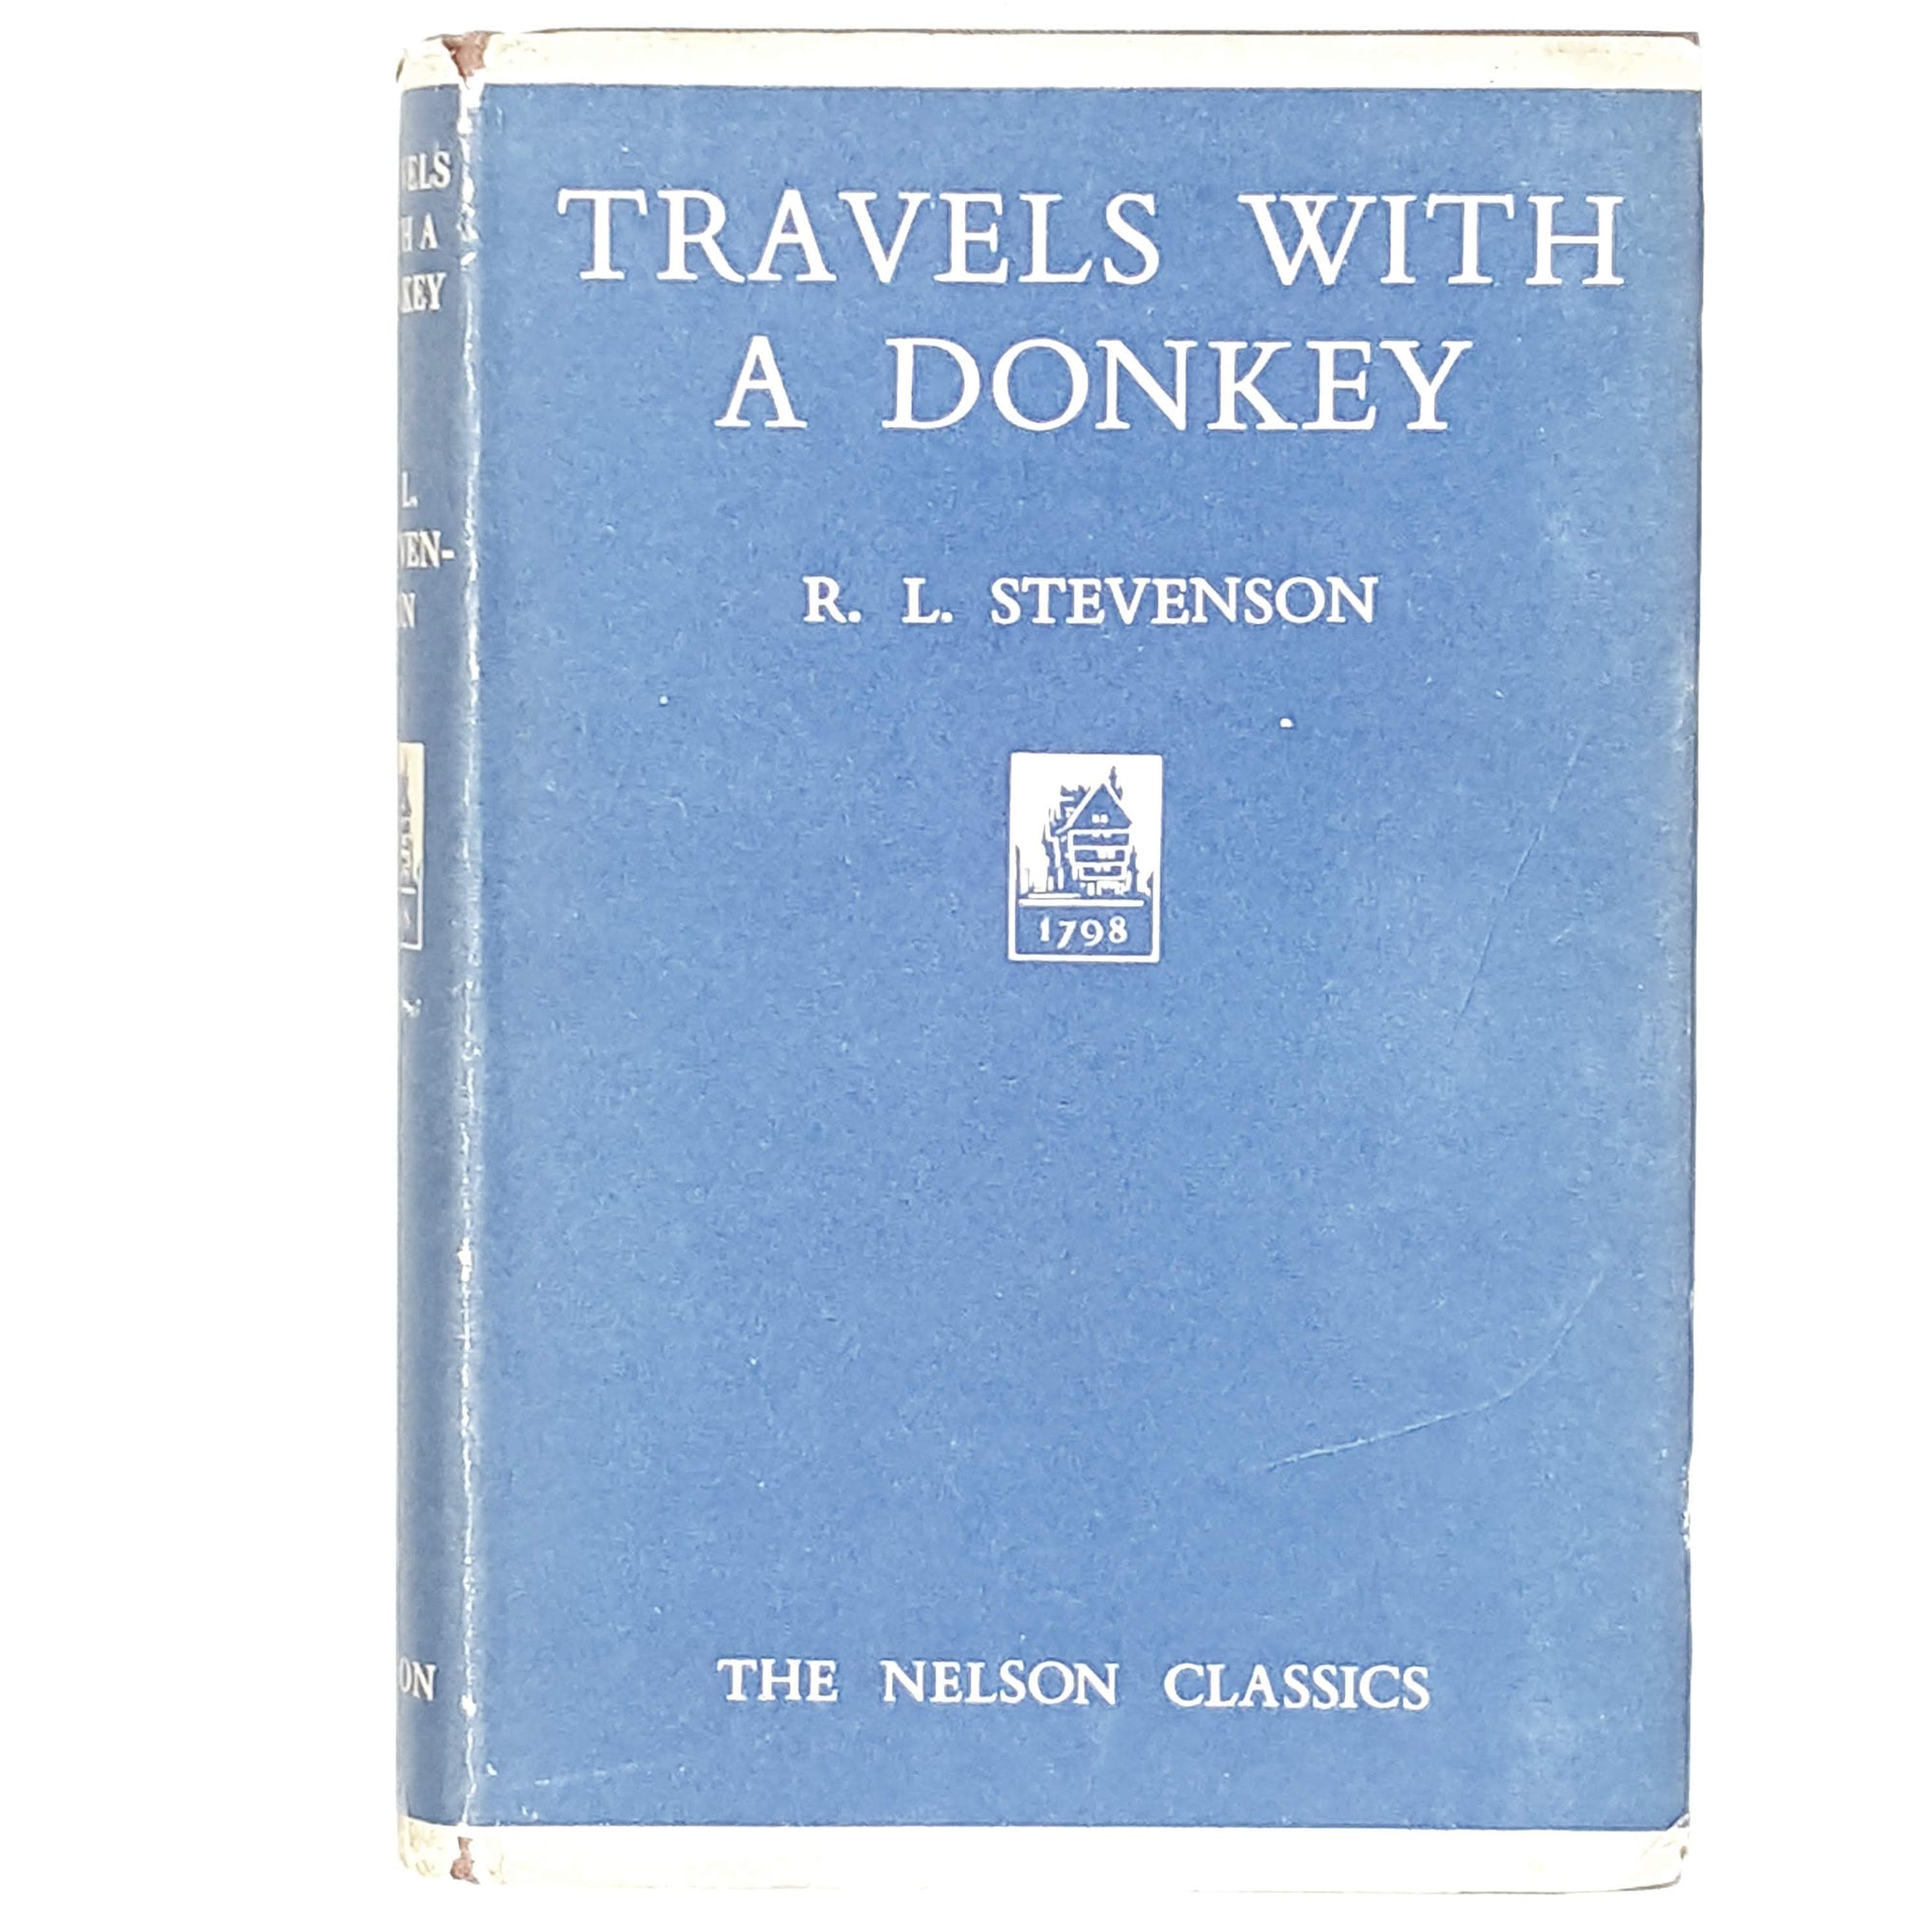 R. L. Stevenson's Travels with a Donkey